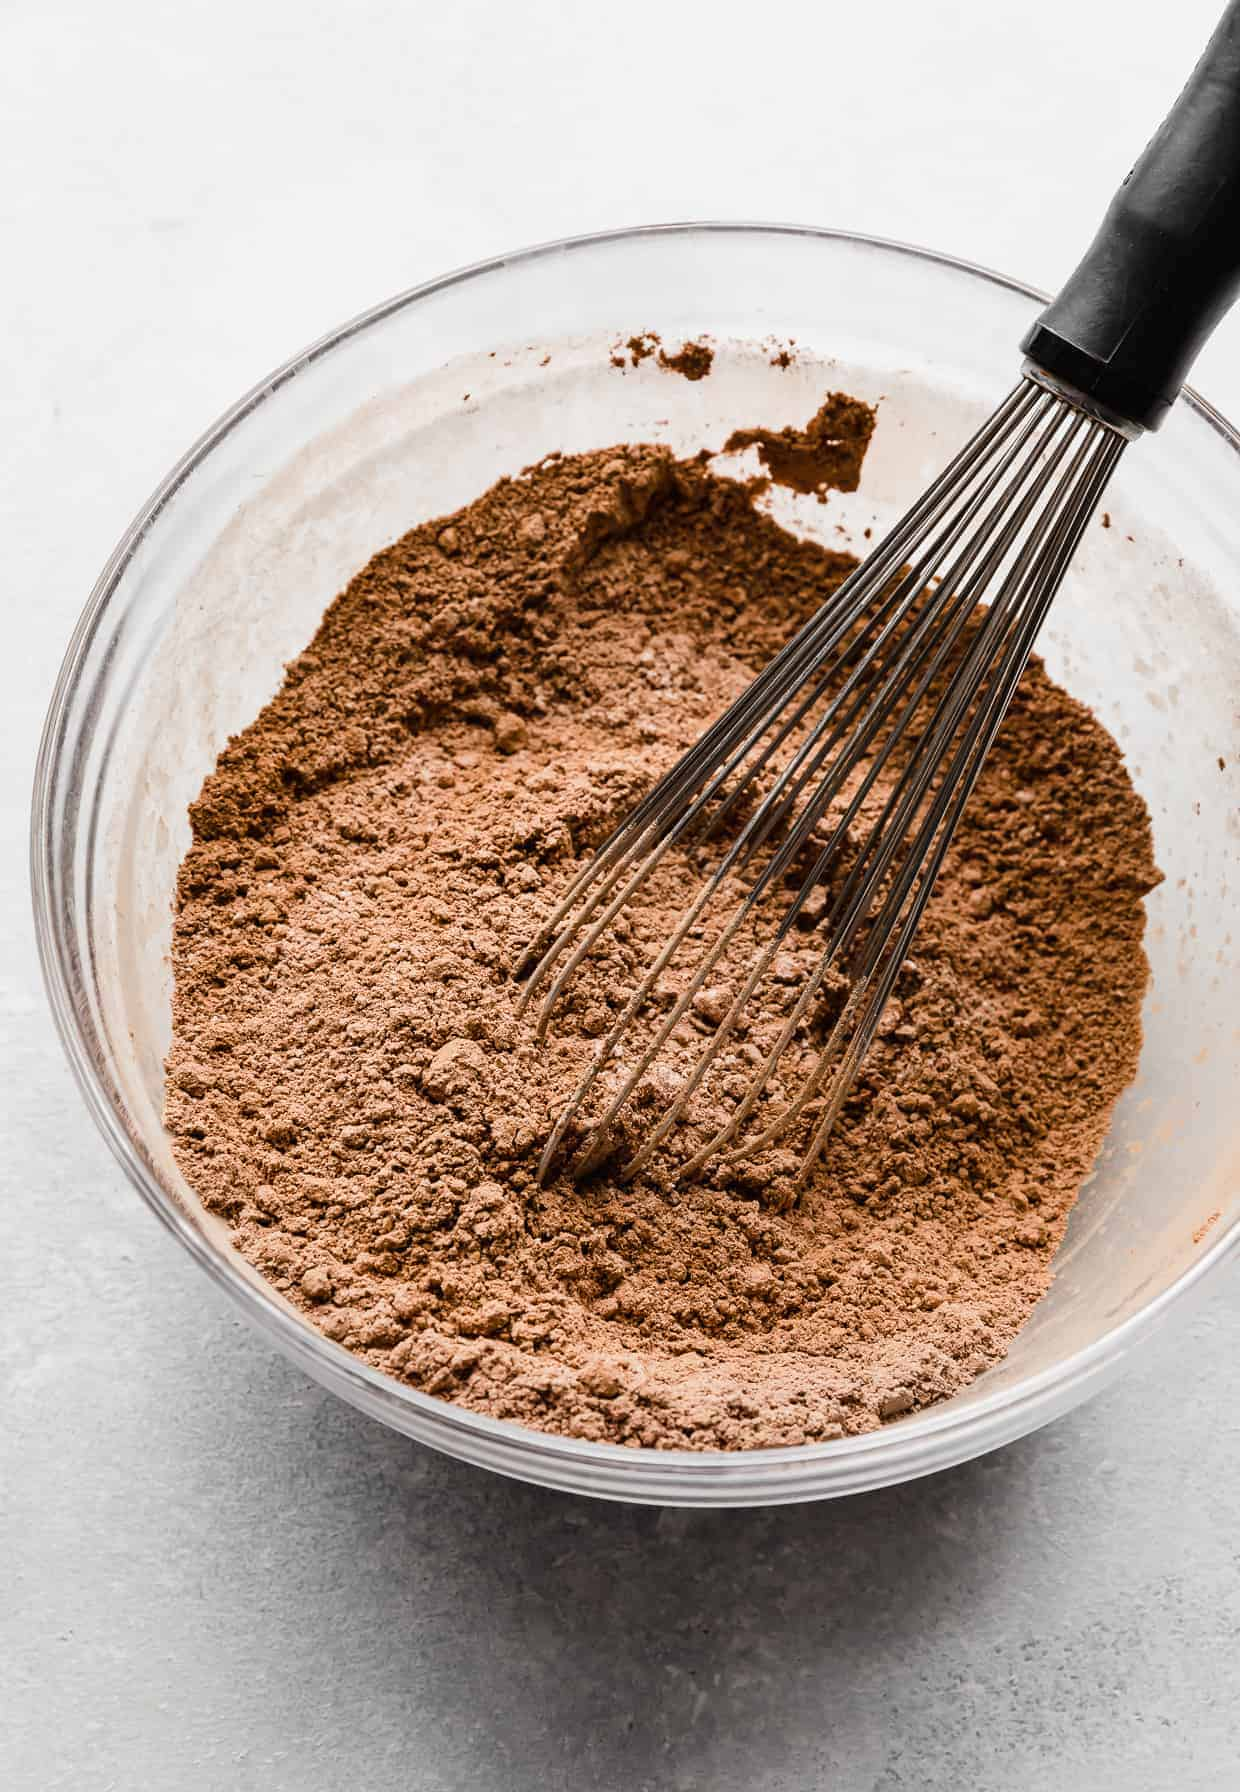 A light brown colored dry ingredients in a glass bowl with a whisk mixing it together.